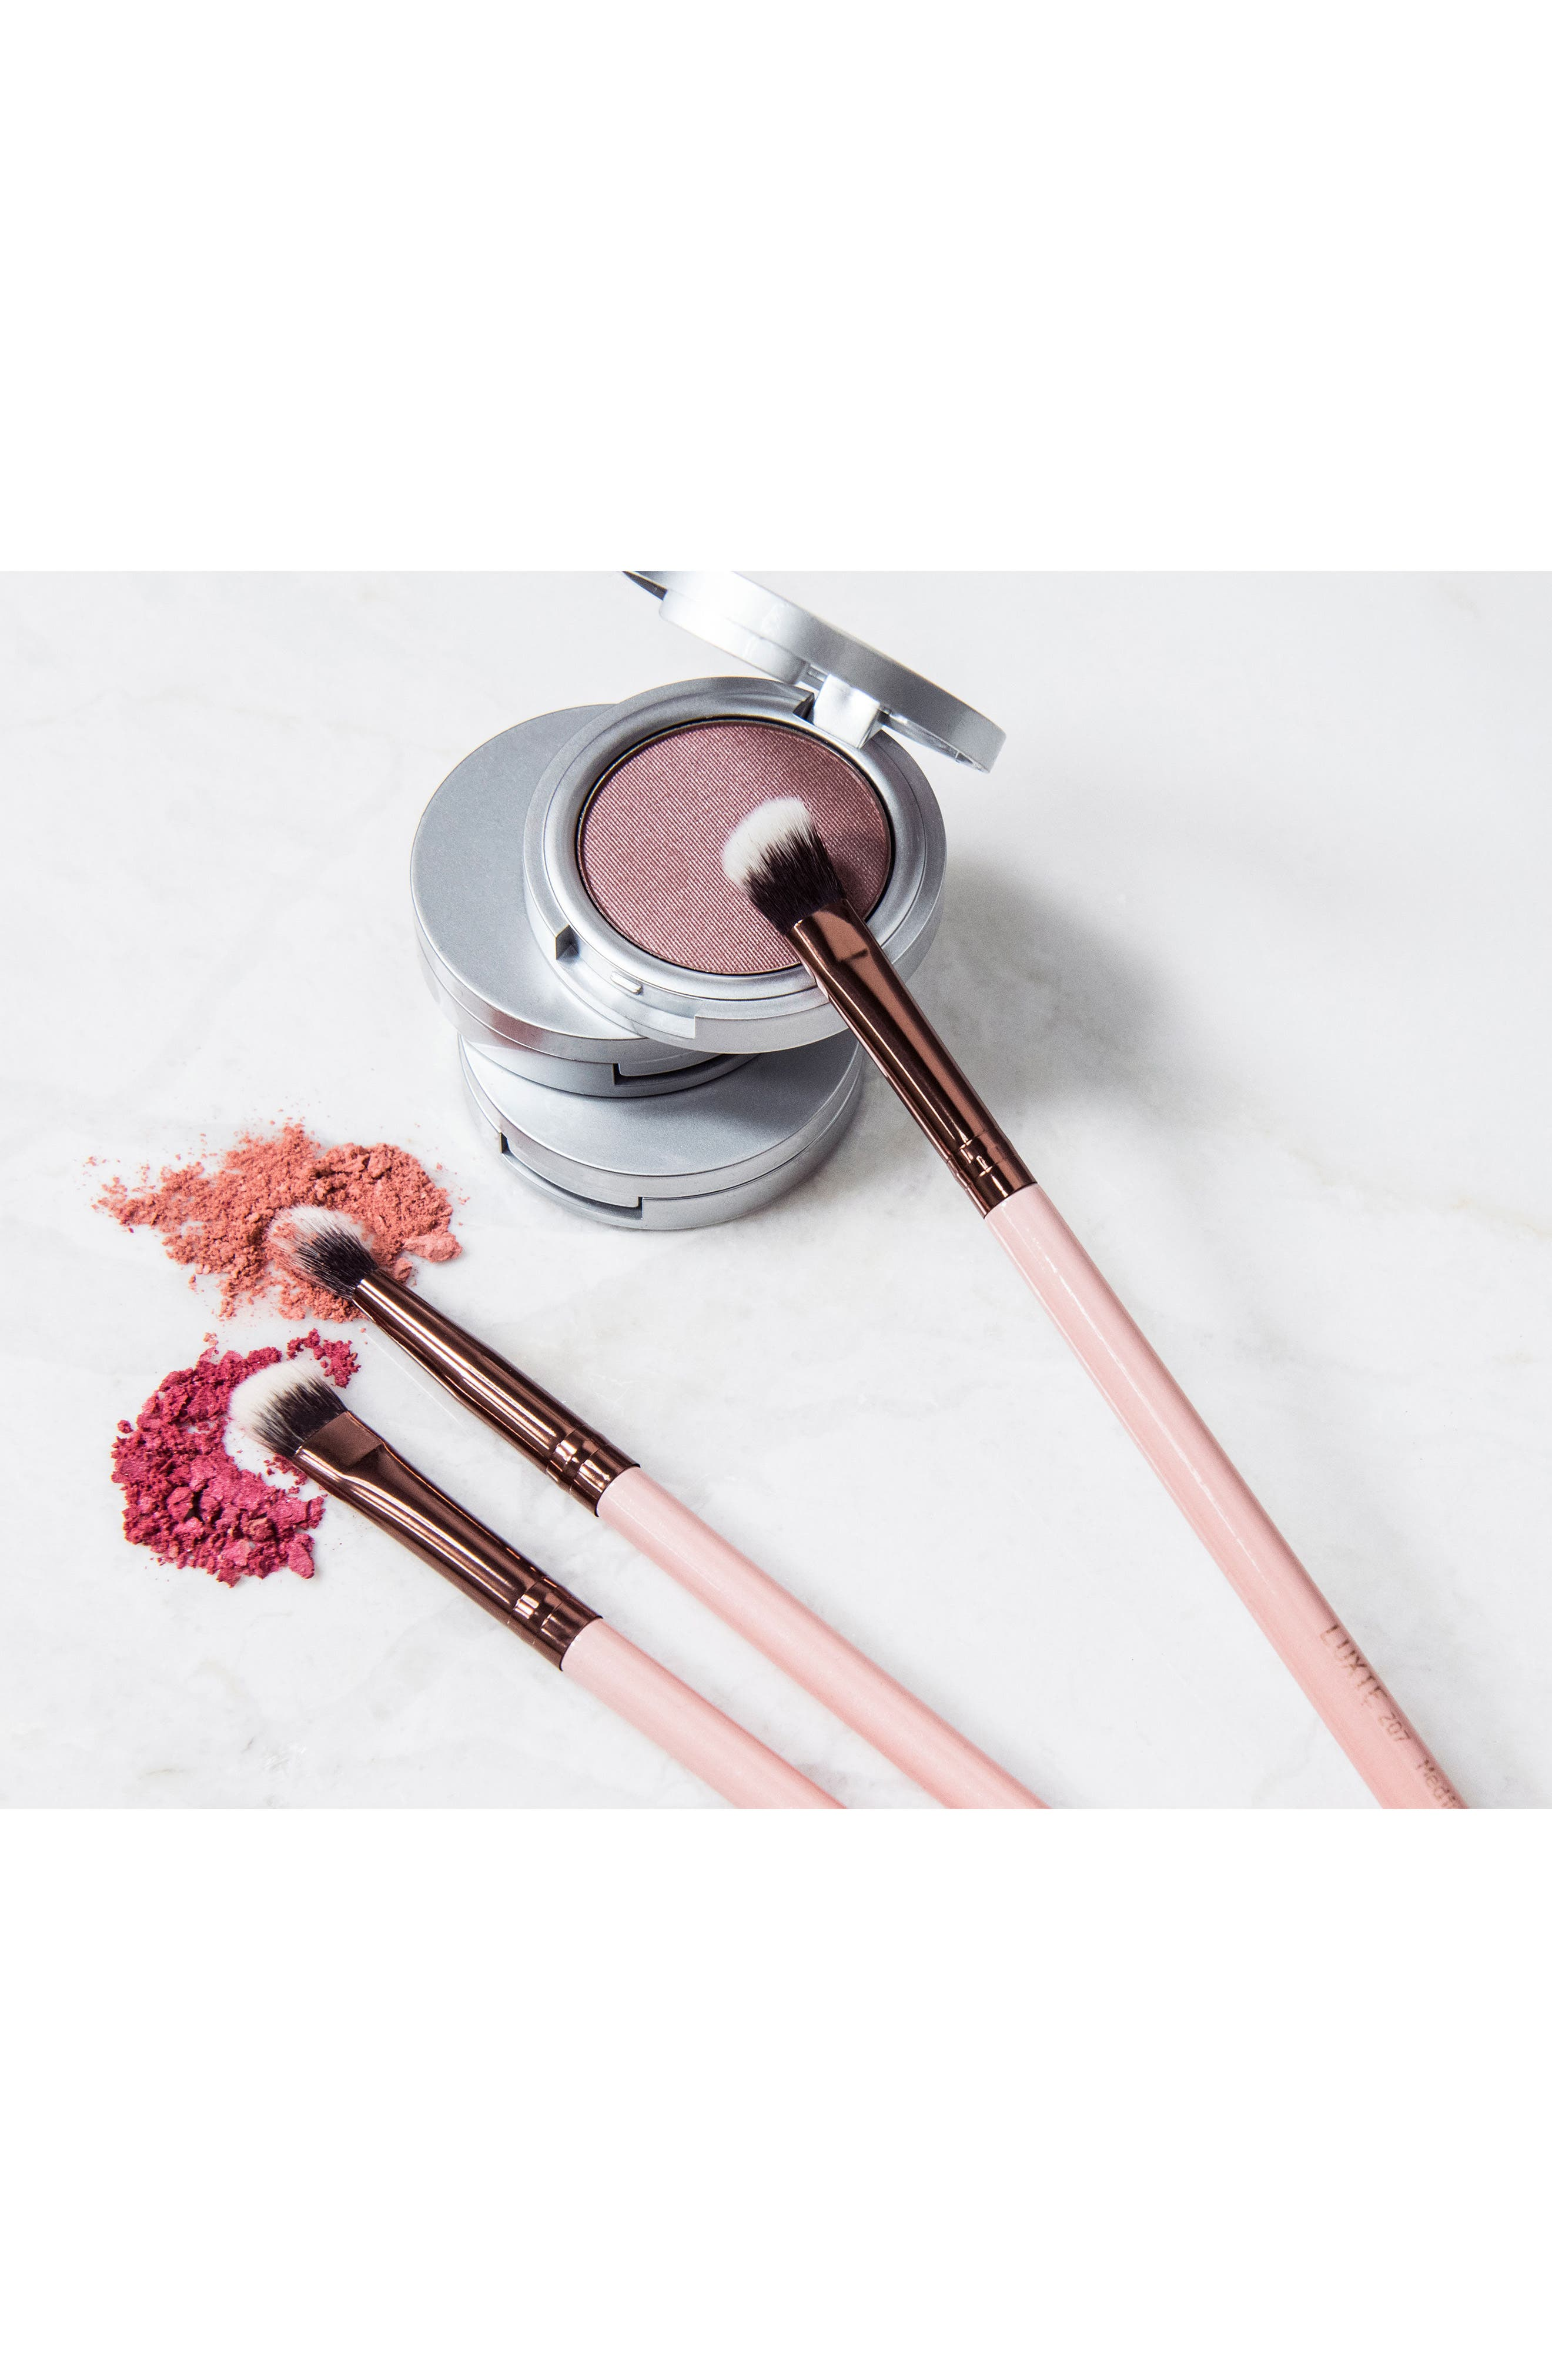 327 Rose Gold Blending Brush,                             Alternate thumbnail 2, color,                             No Color